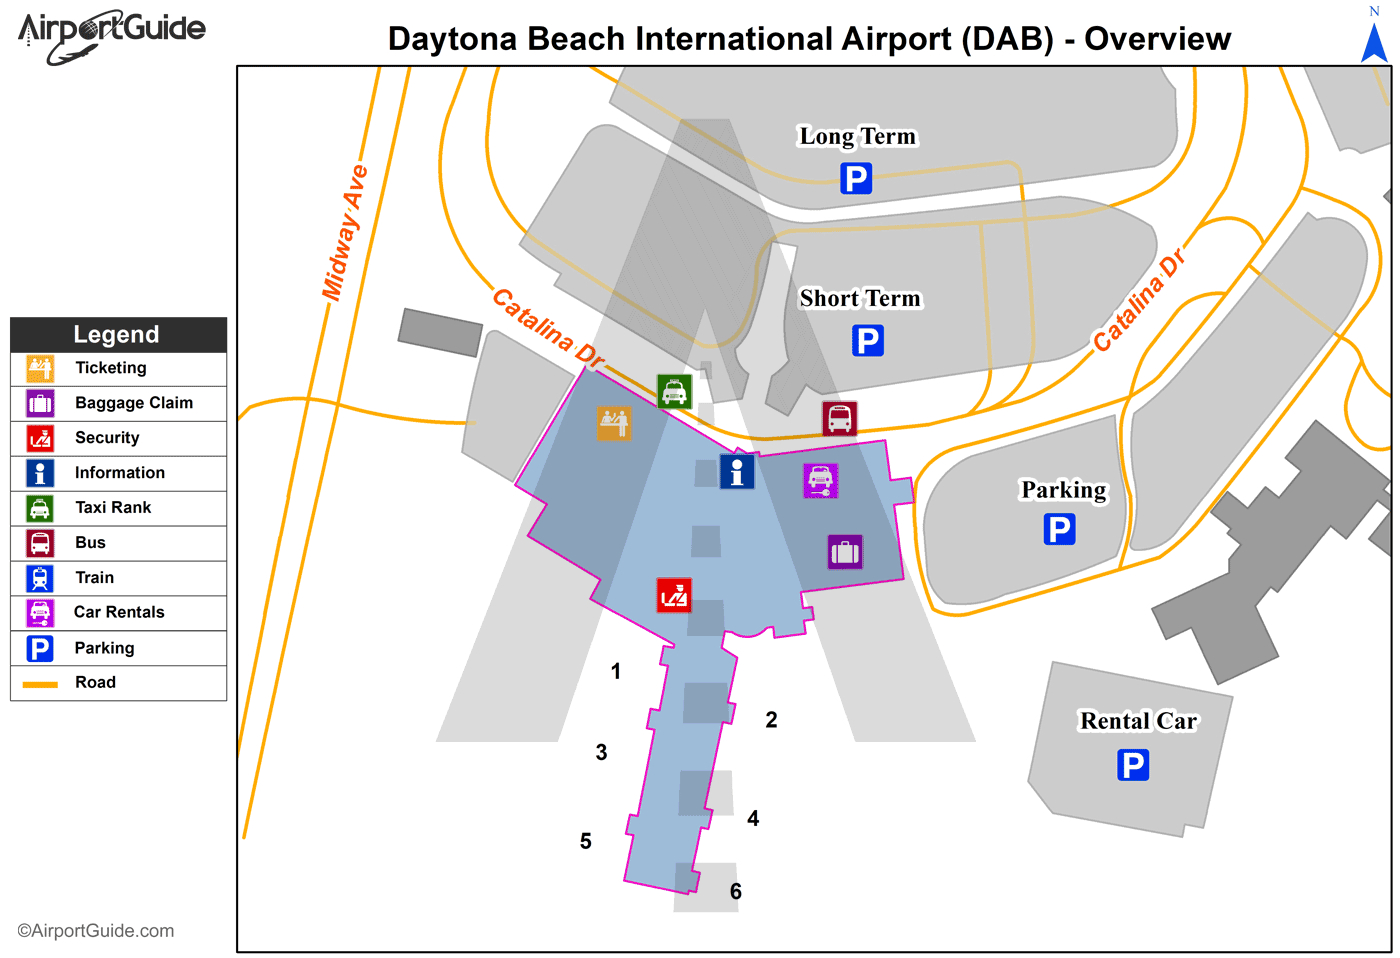 Daytona Beach - Daytona Beach International (DAB) Airport Terminal Map - Overview